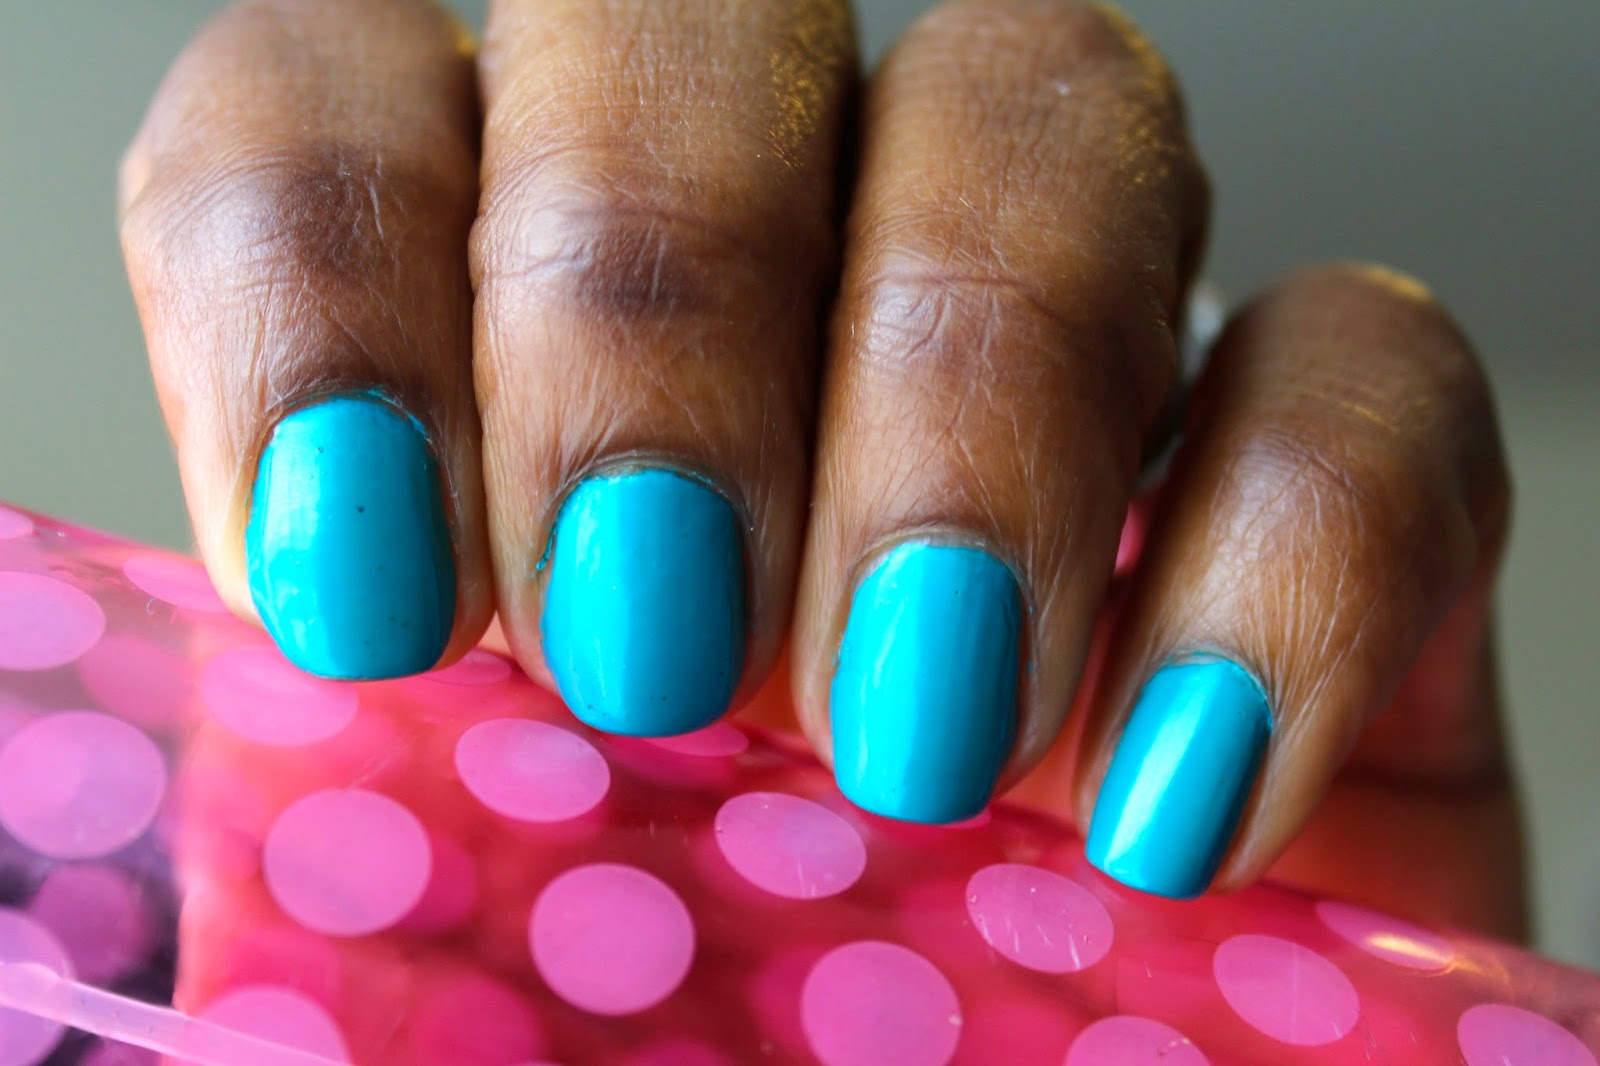 Manicure Monday – Teal